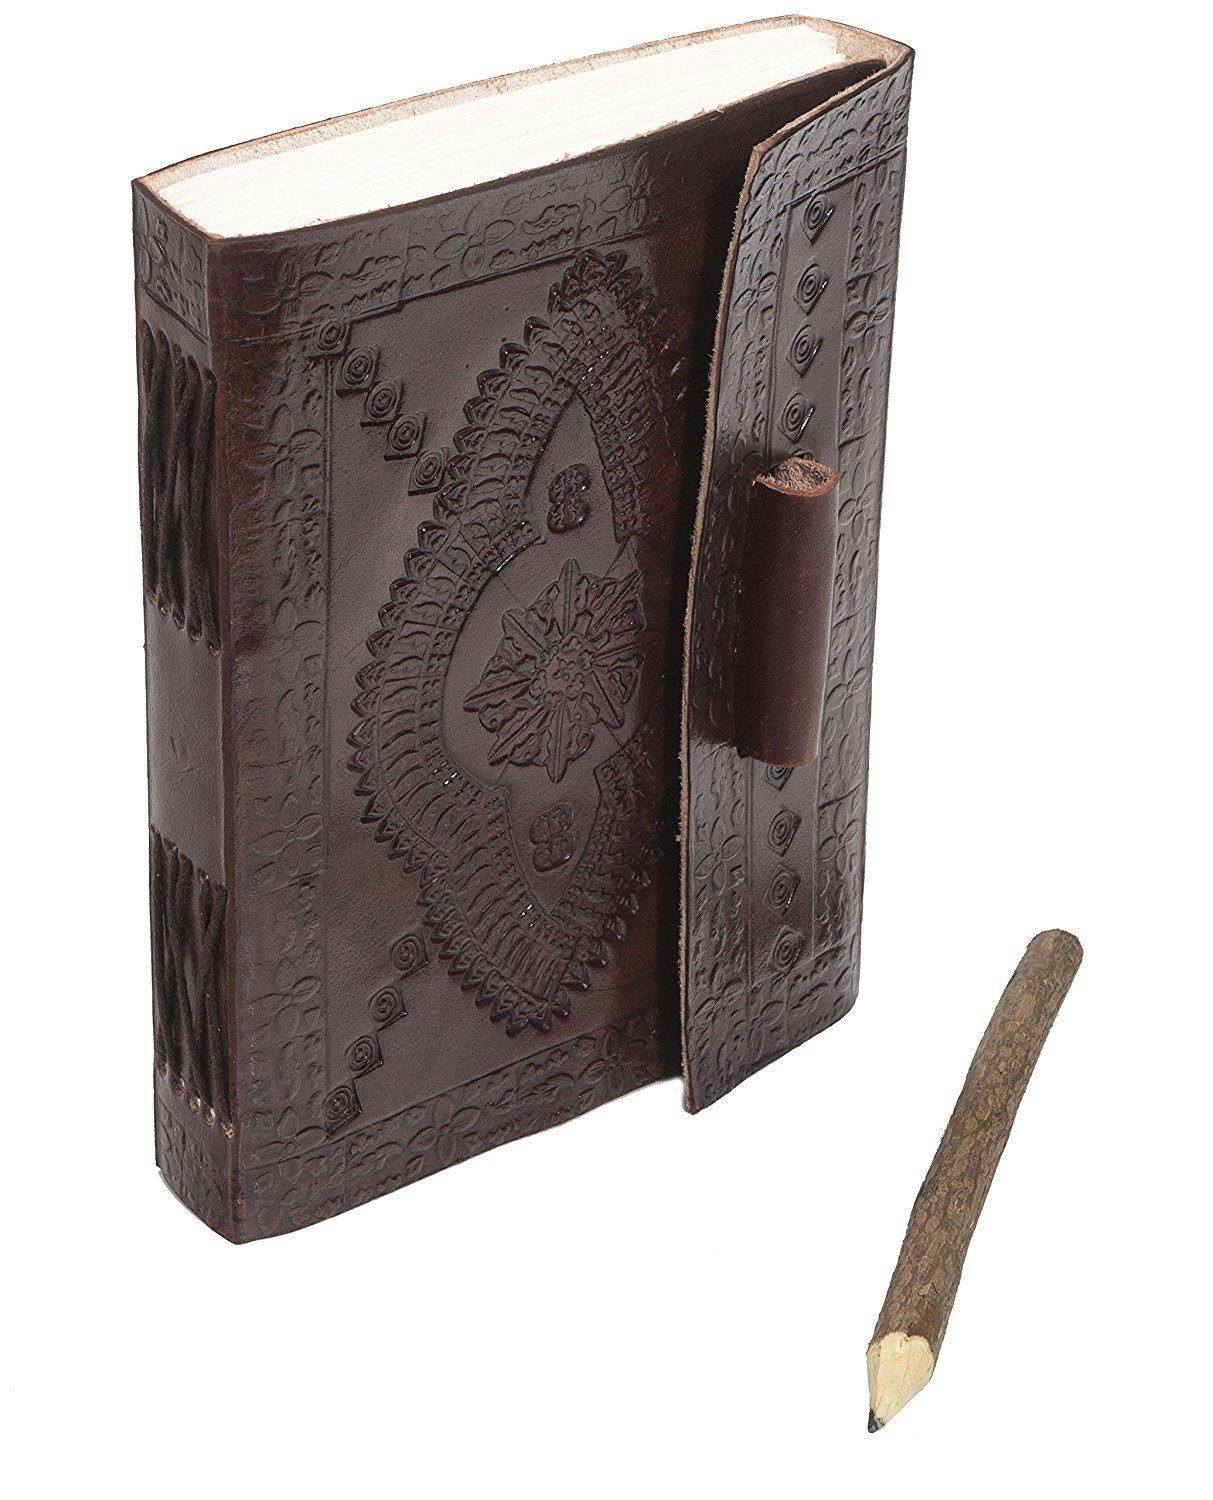 ININDIA Pure Genuine Real Vintage Leather Handmadepaper Notebook Diary For Office Home To Write Poem Daily Update - Brown Size Of 7*5